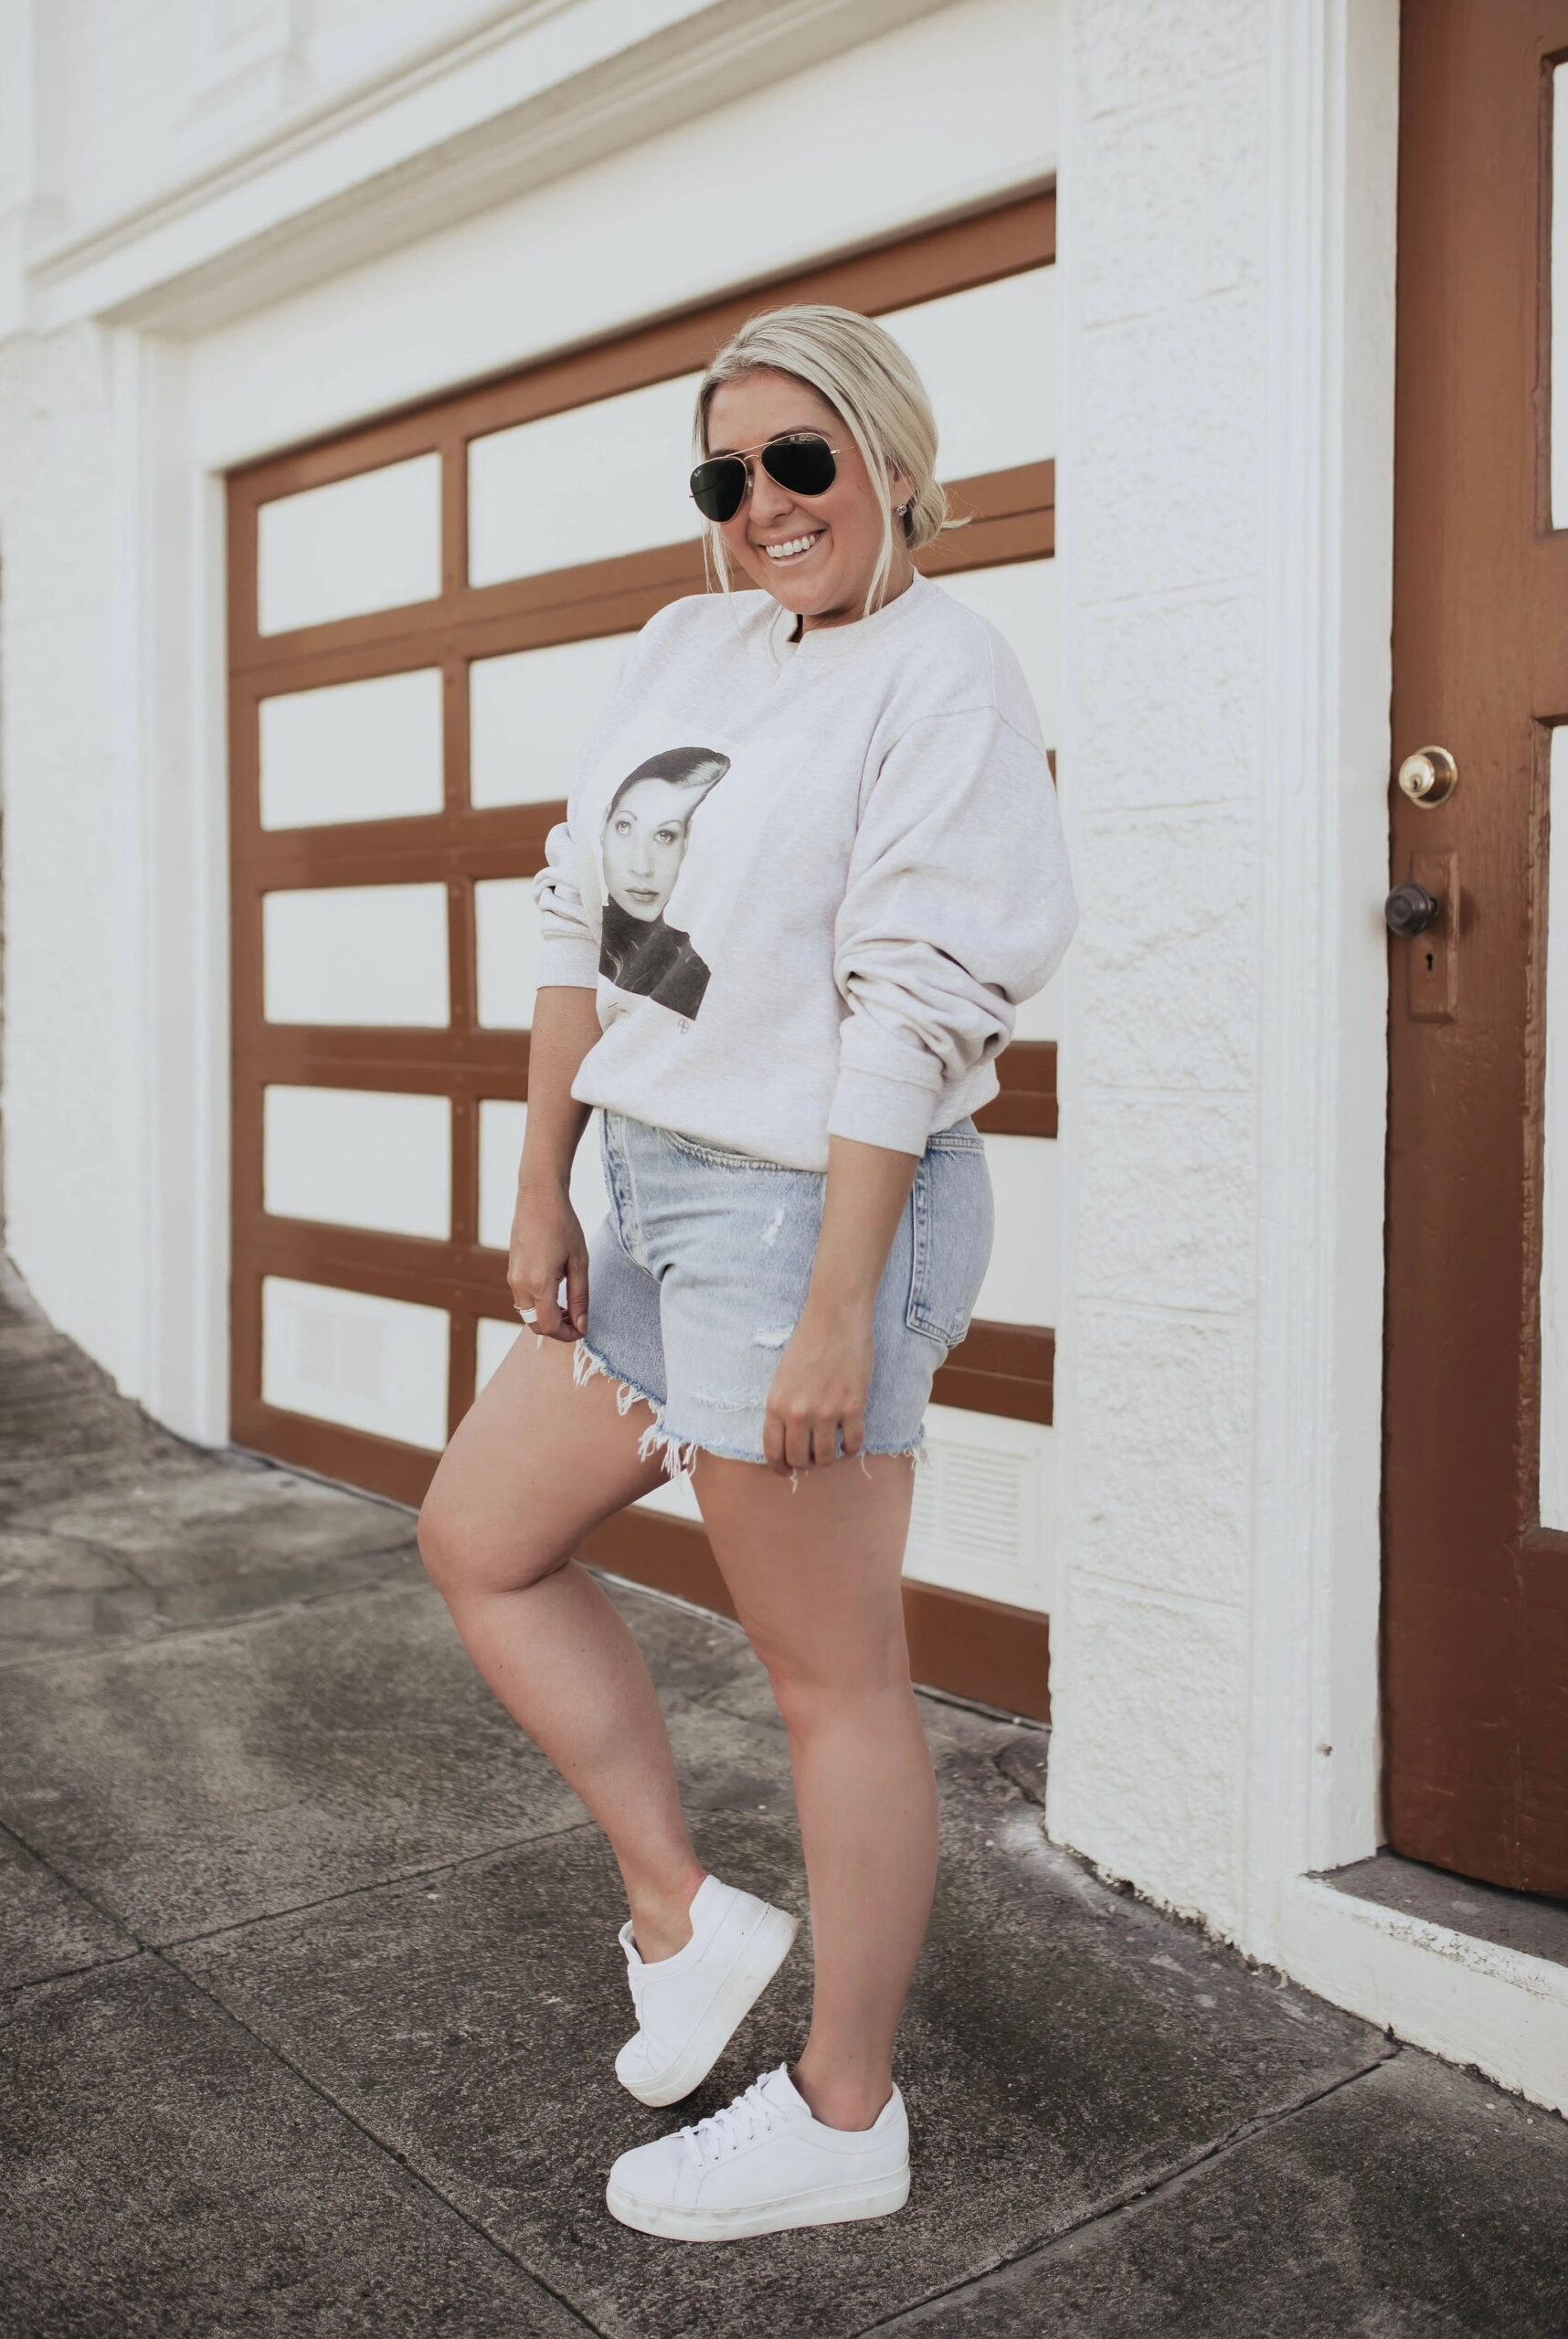 San Francisco fashion blogger KatWalkSF wears the new longer inseam AGOLDE parker shorts and the M. Gemi Palestra Alta Platform Sneakers.